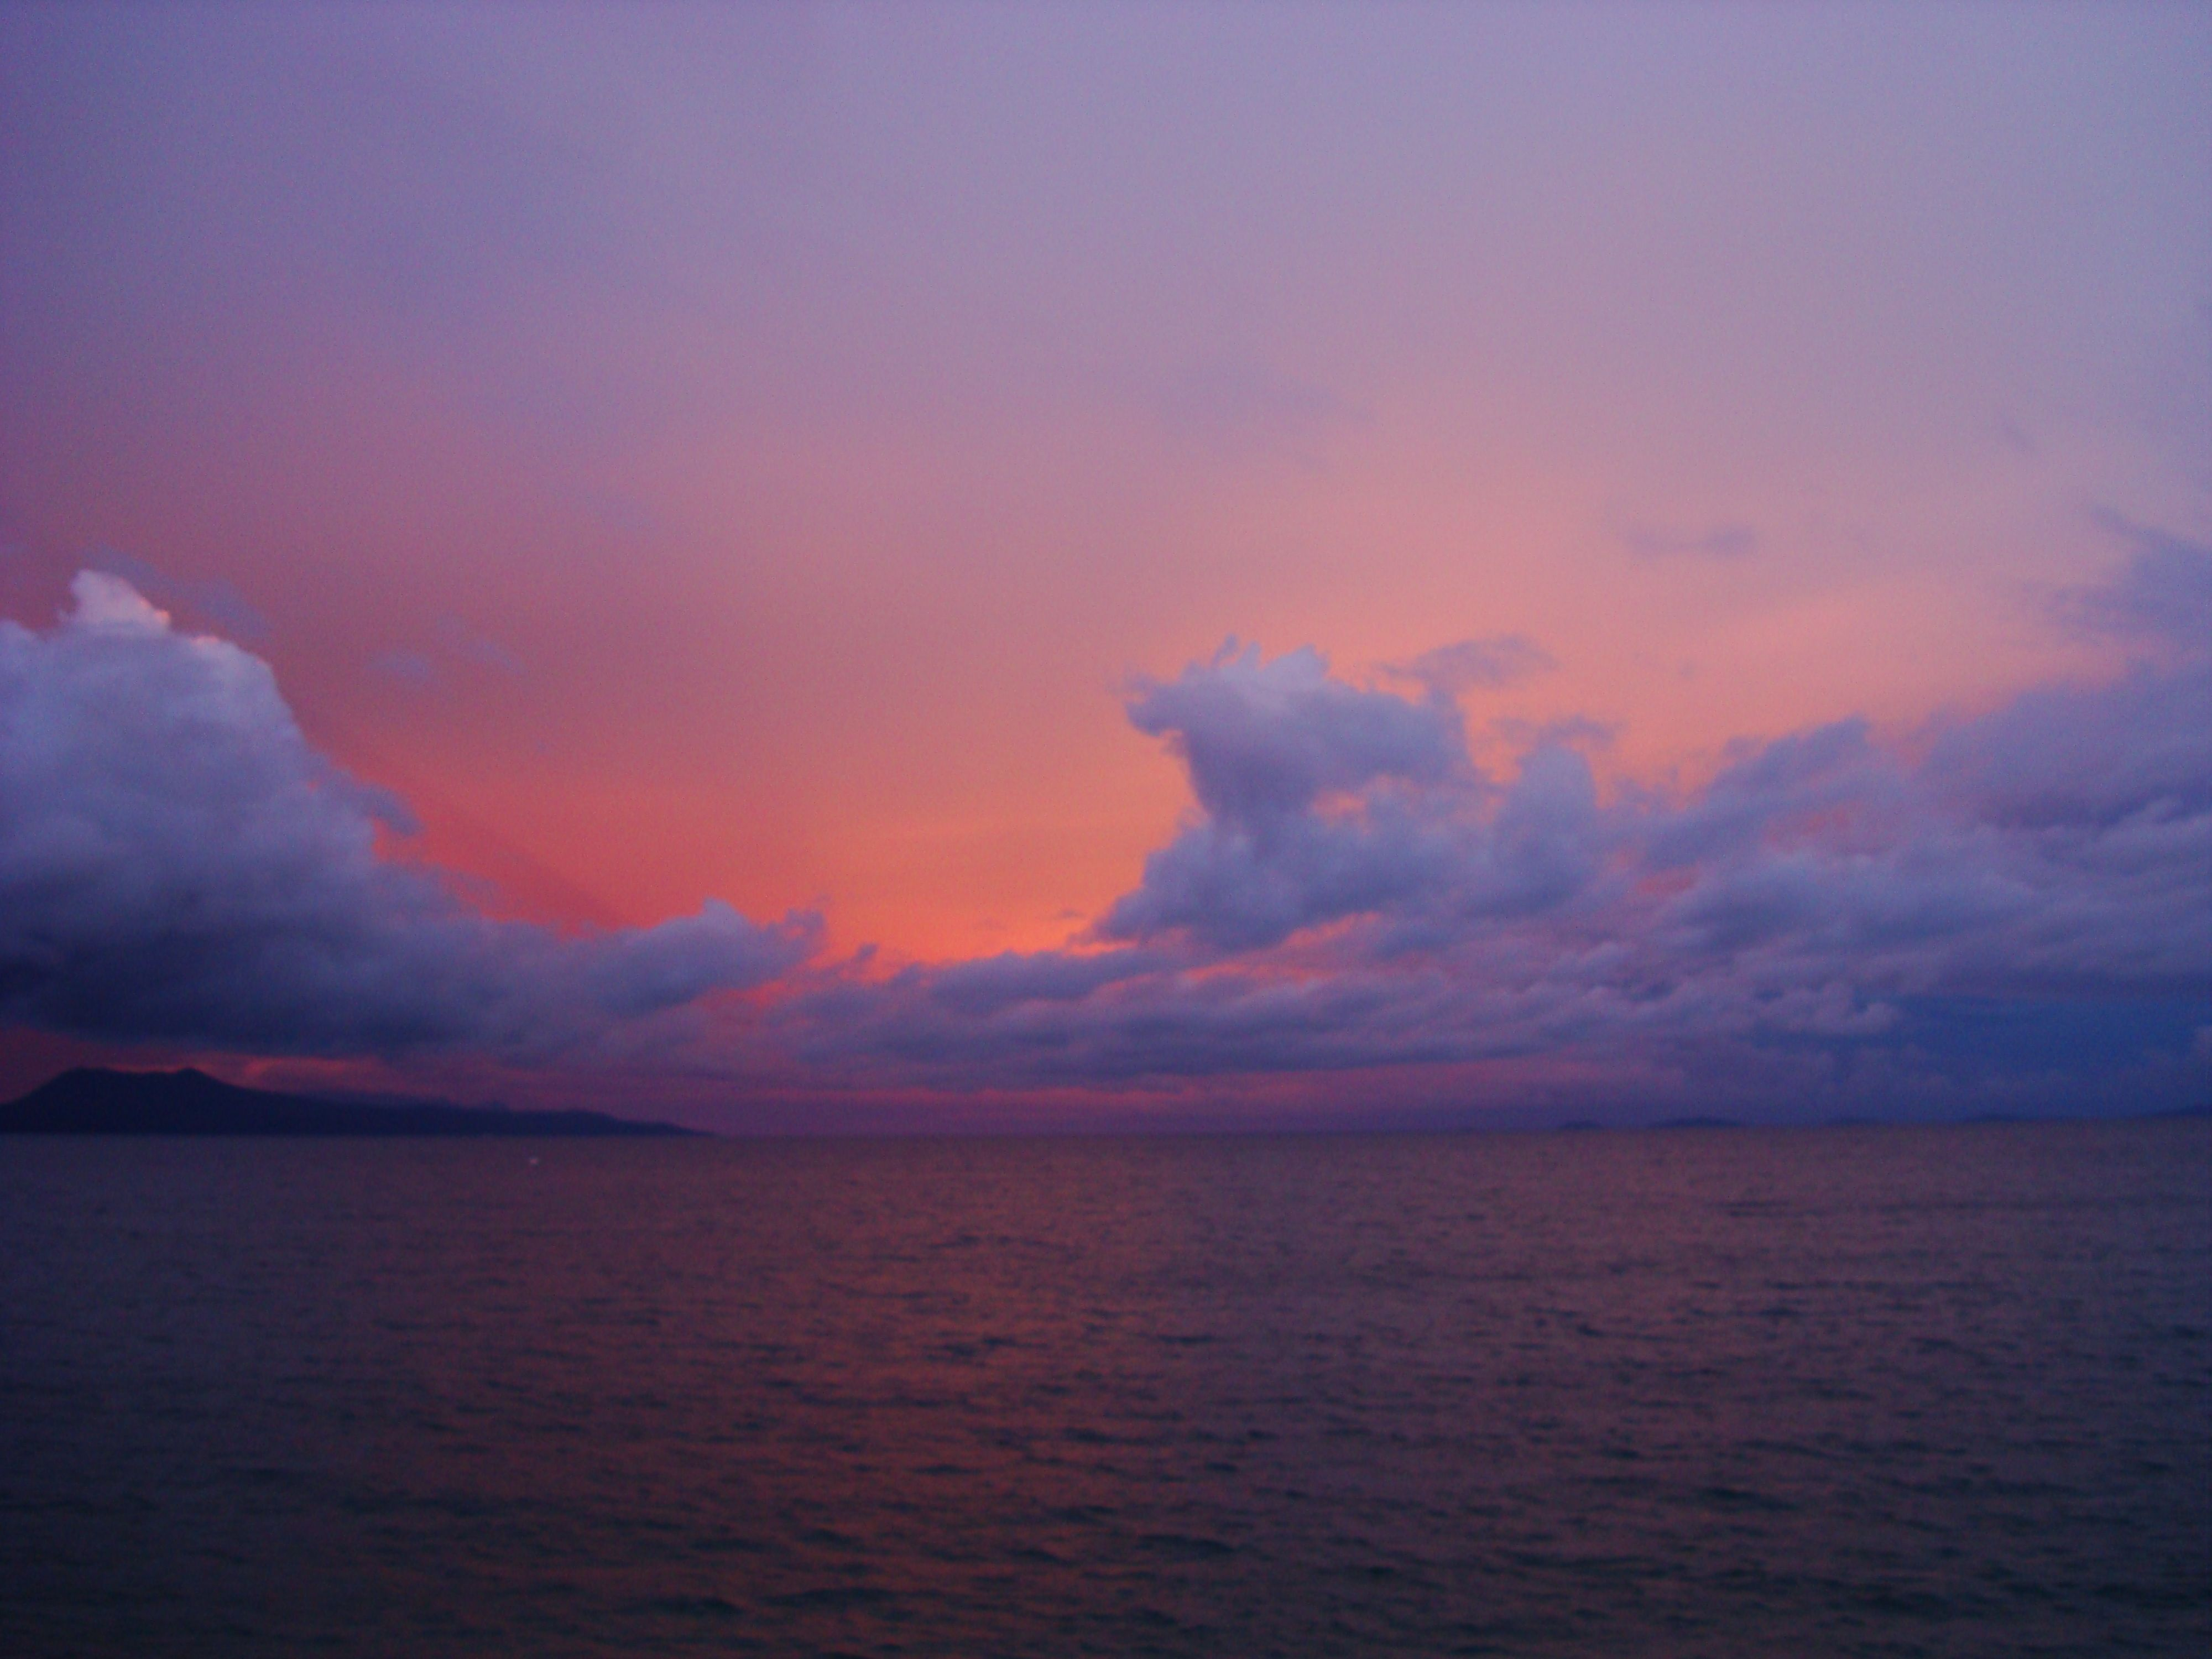 OMG-midnights-sumer-dream-pastel-pinks-and-greys-sunset-over-Varadero-Bay-Tabinay-02.JPG (4000×3000)